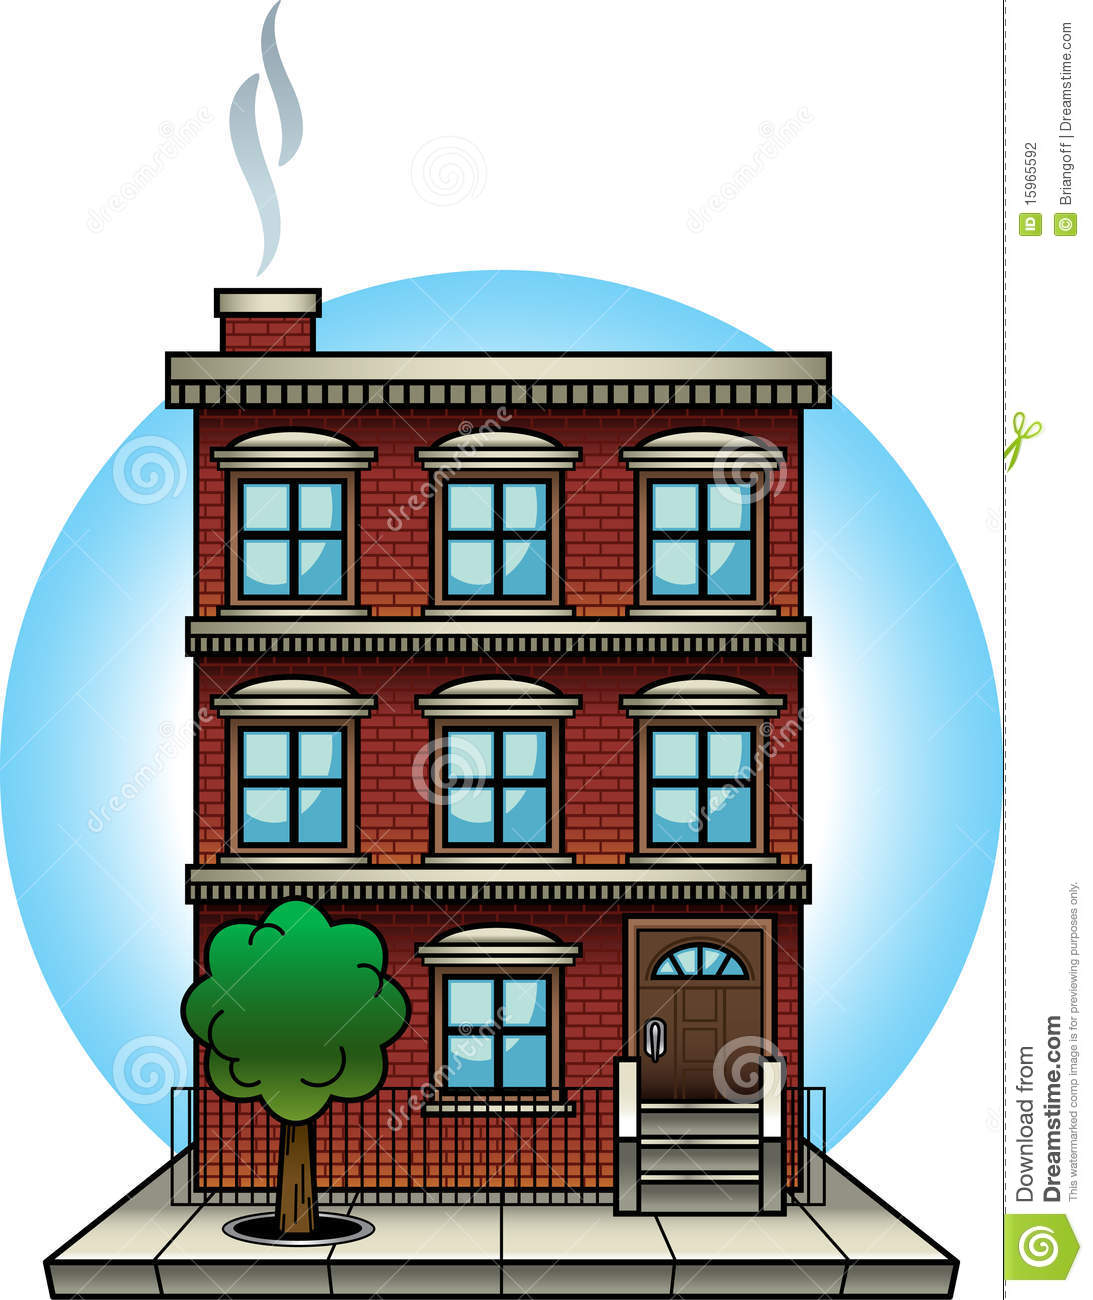 apartment building stock photography - image: 15965592